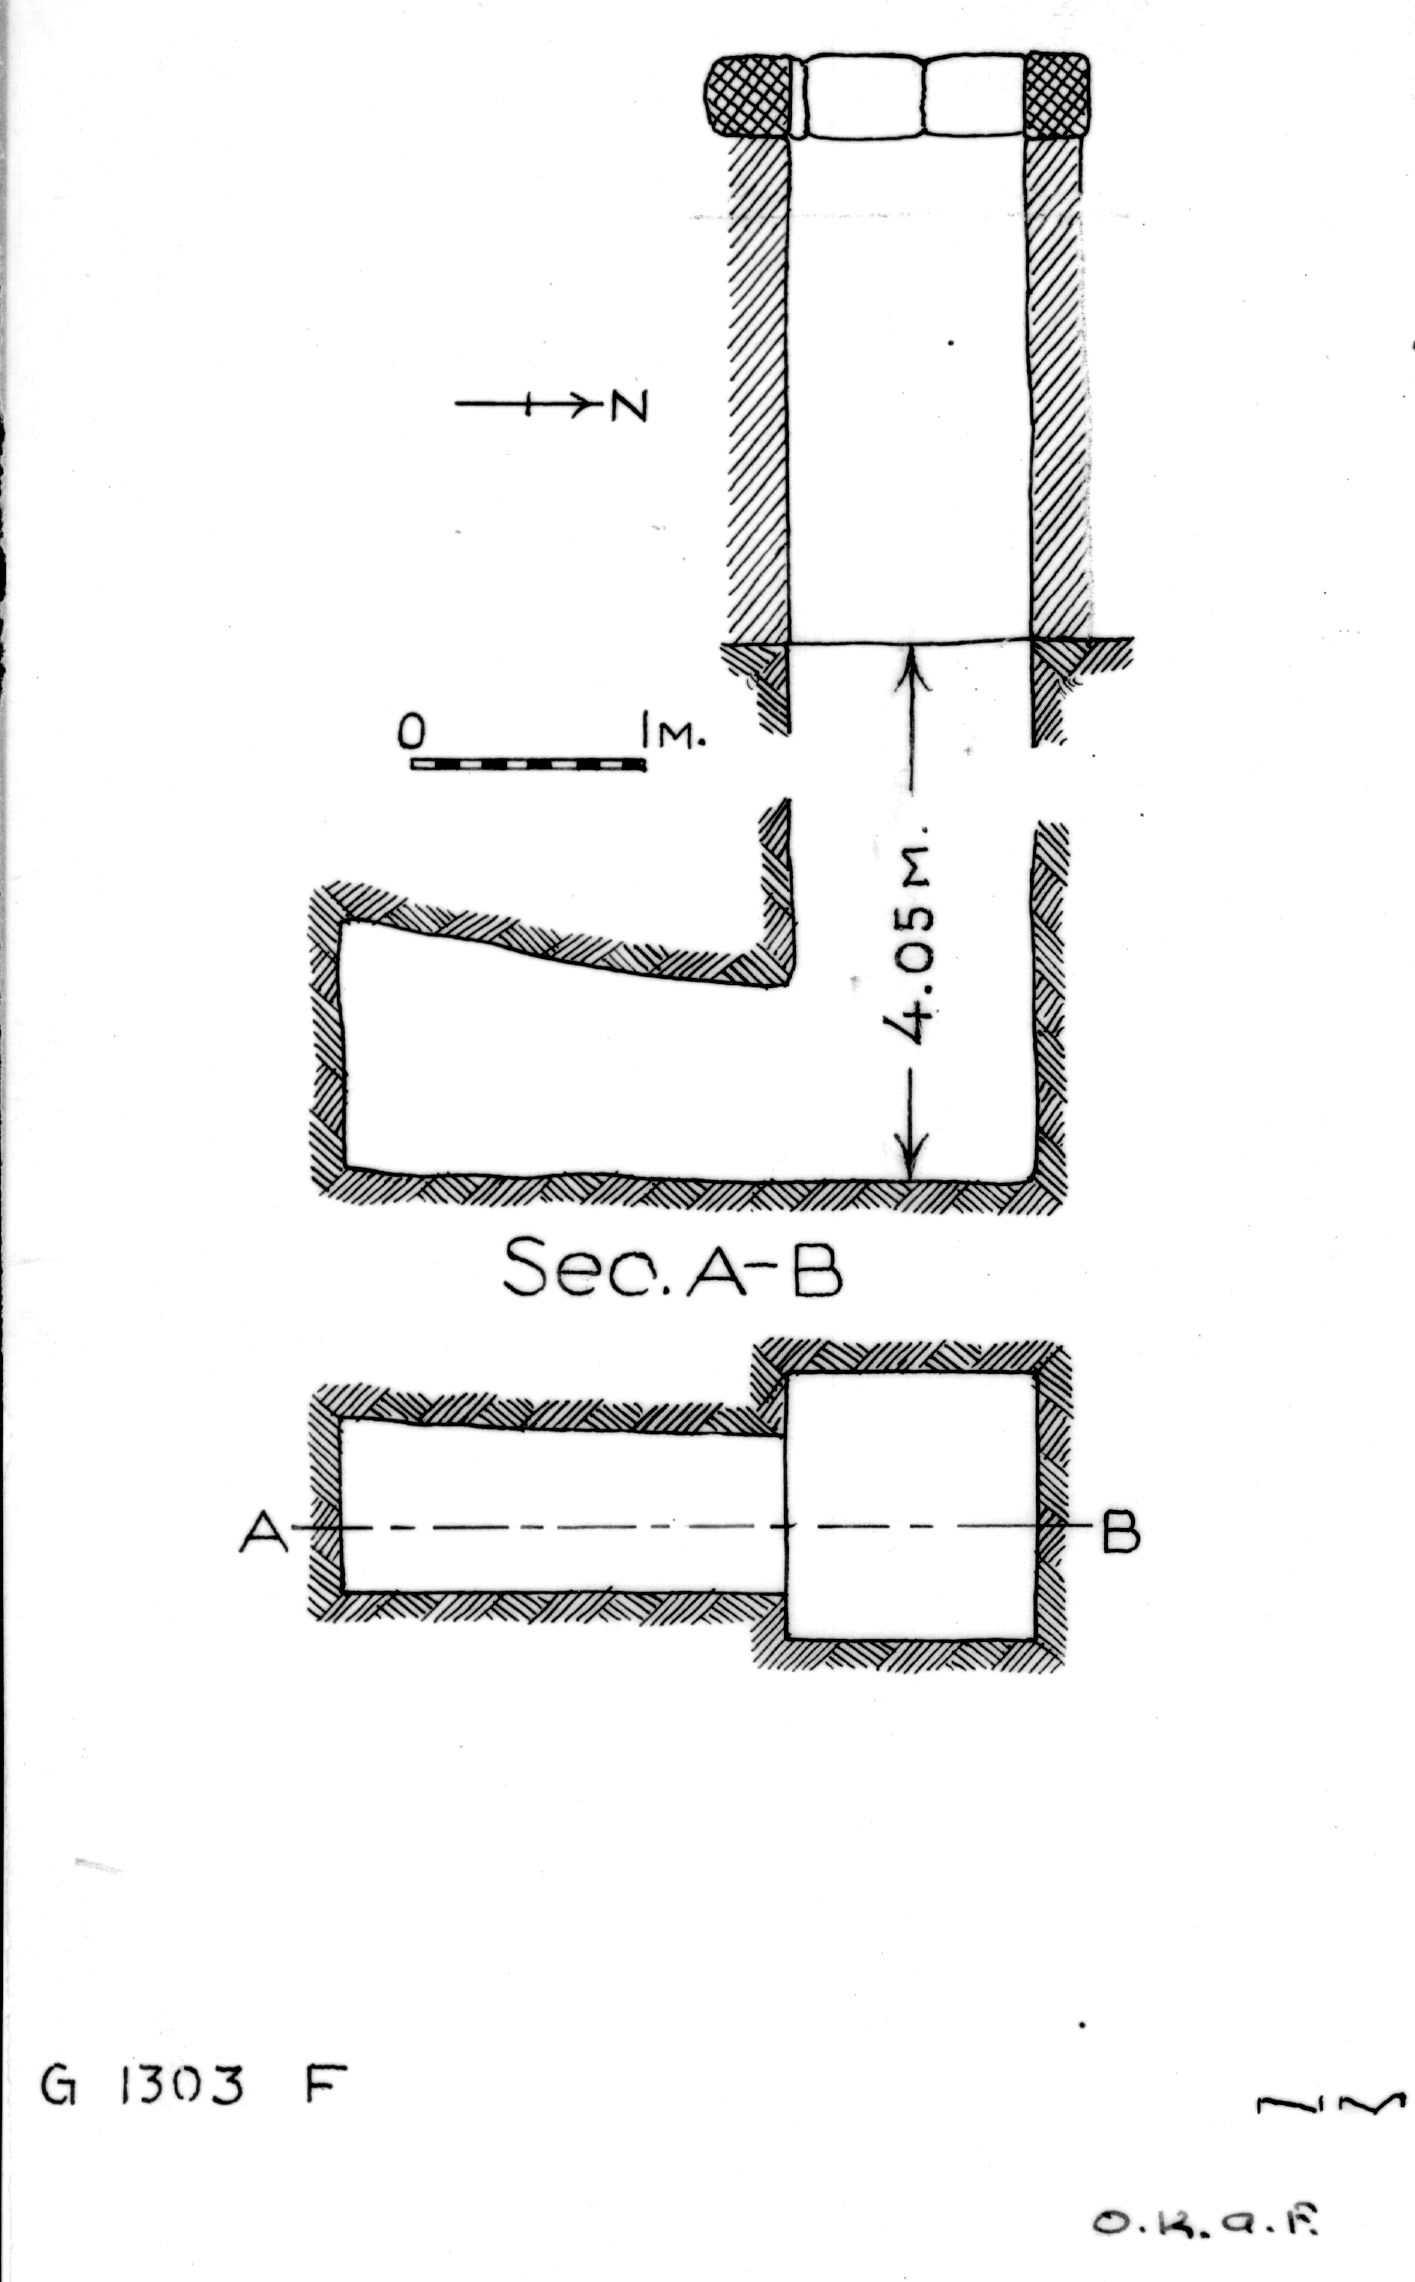 Maps and plans: G 1303, Shaft F